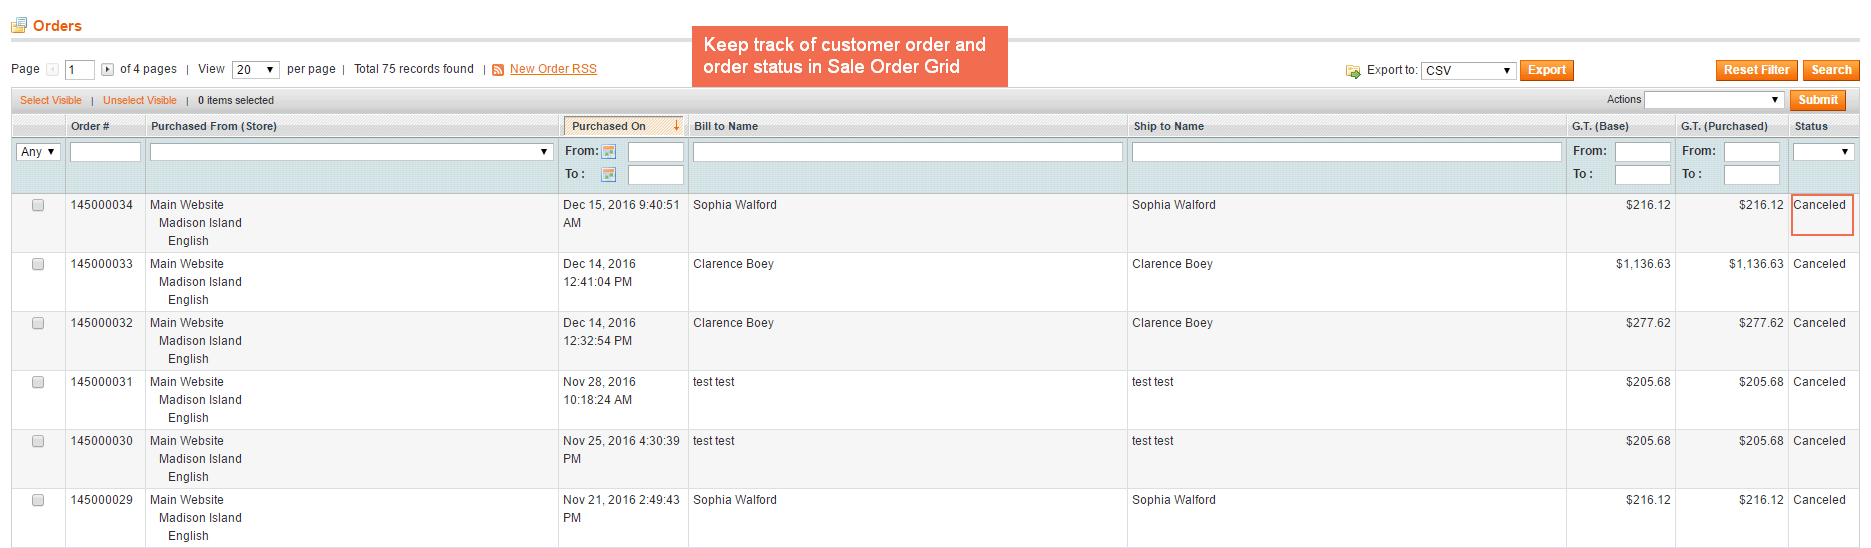 Keep track of canceled orders in Sales Order Grid